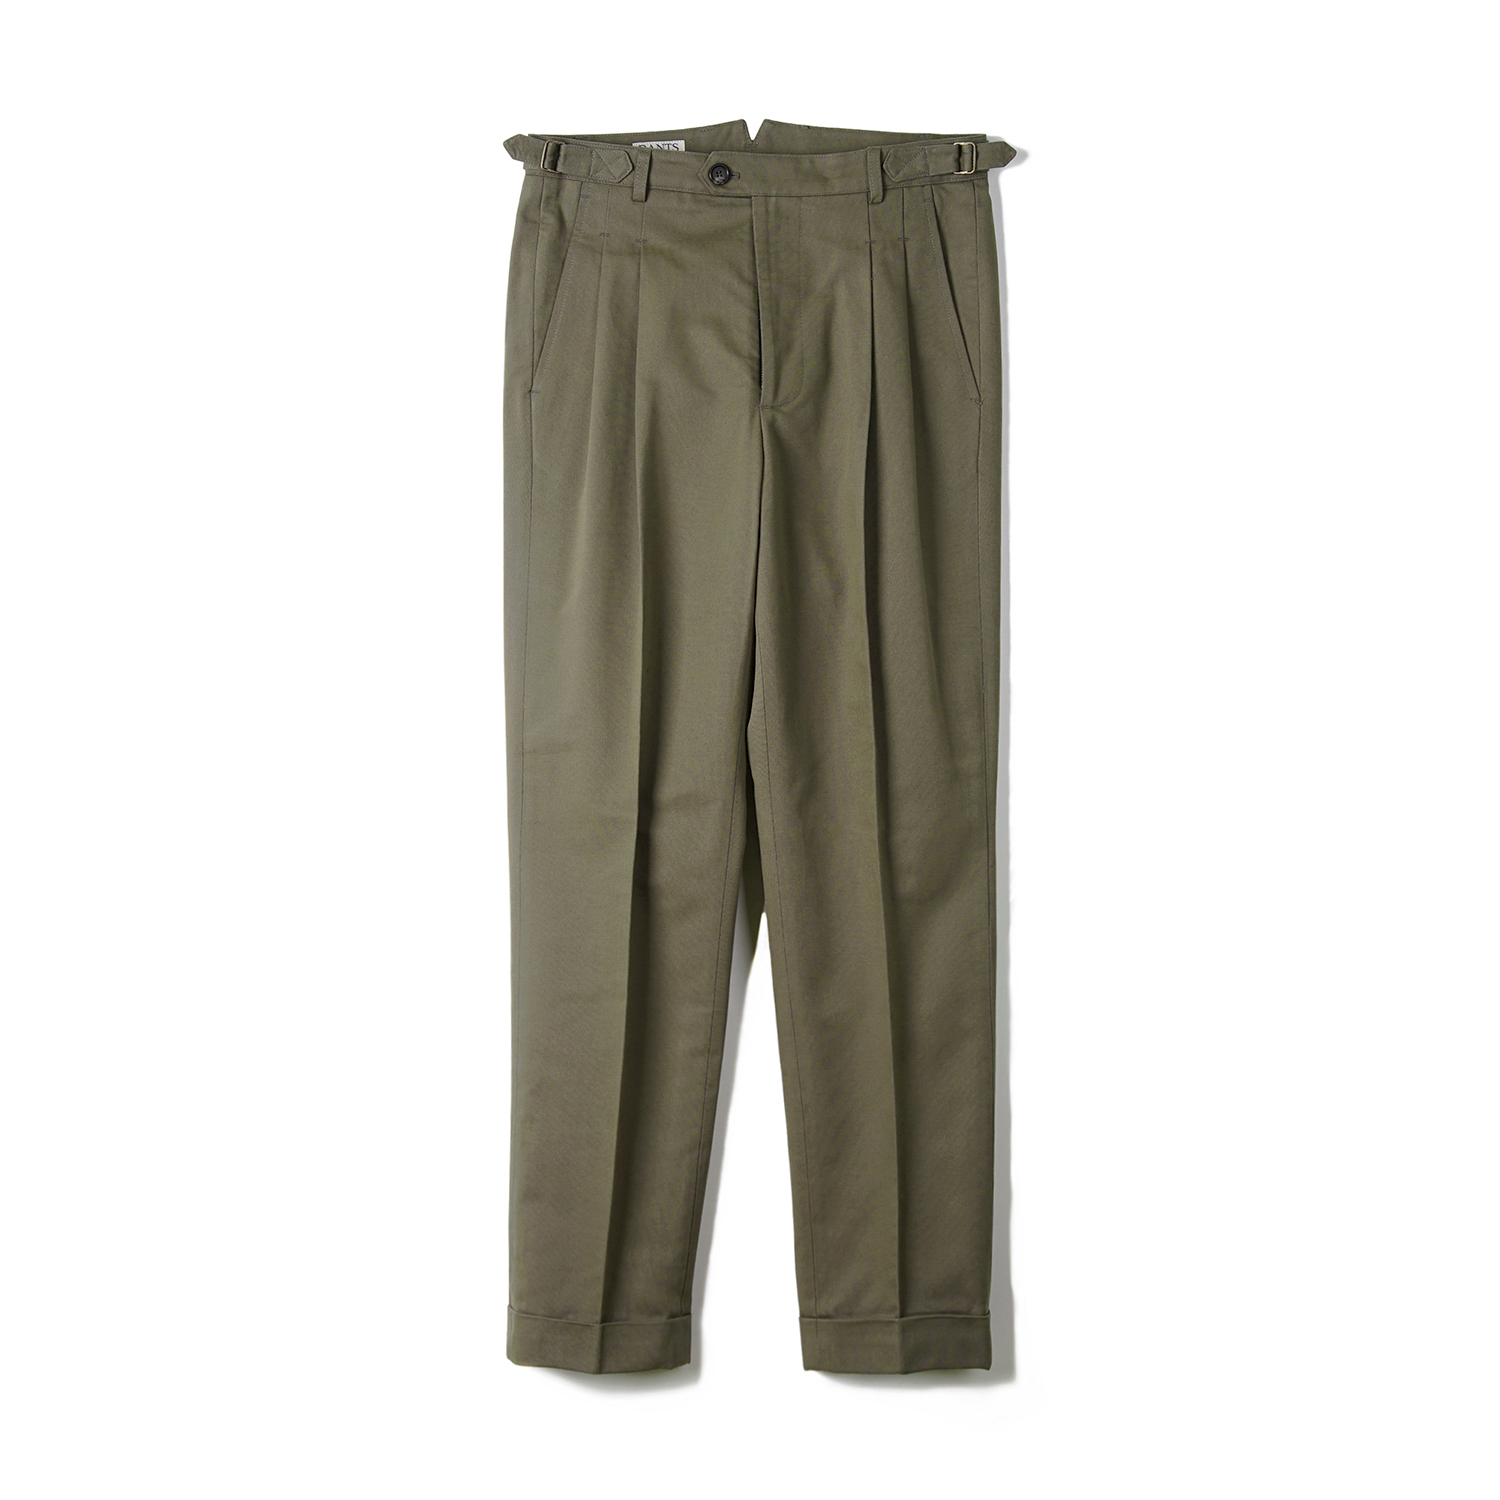 BTS Cotton Two-tuck Pants - Olive Drab